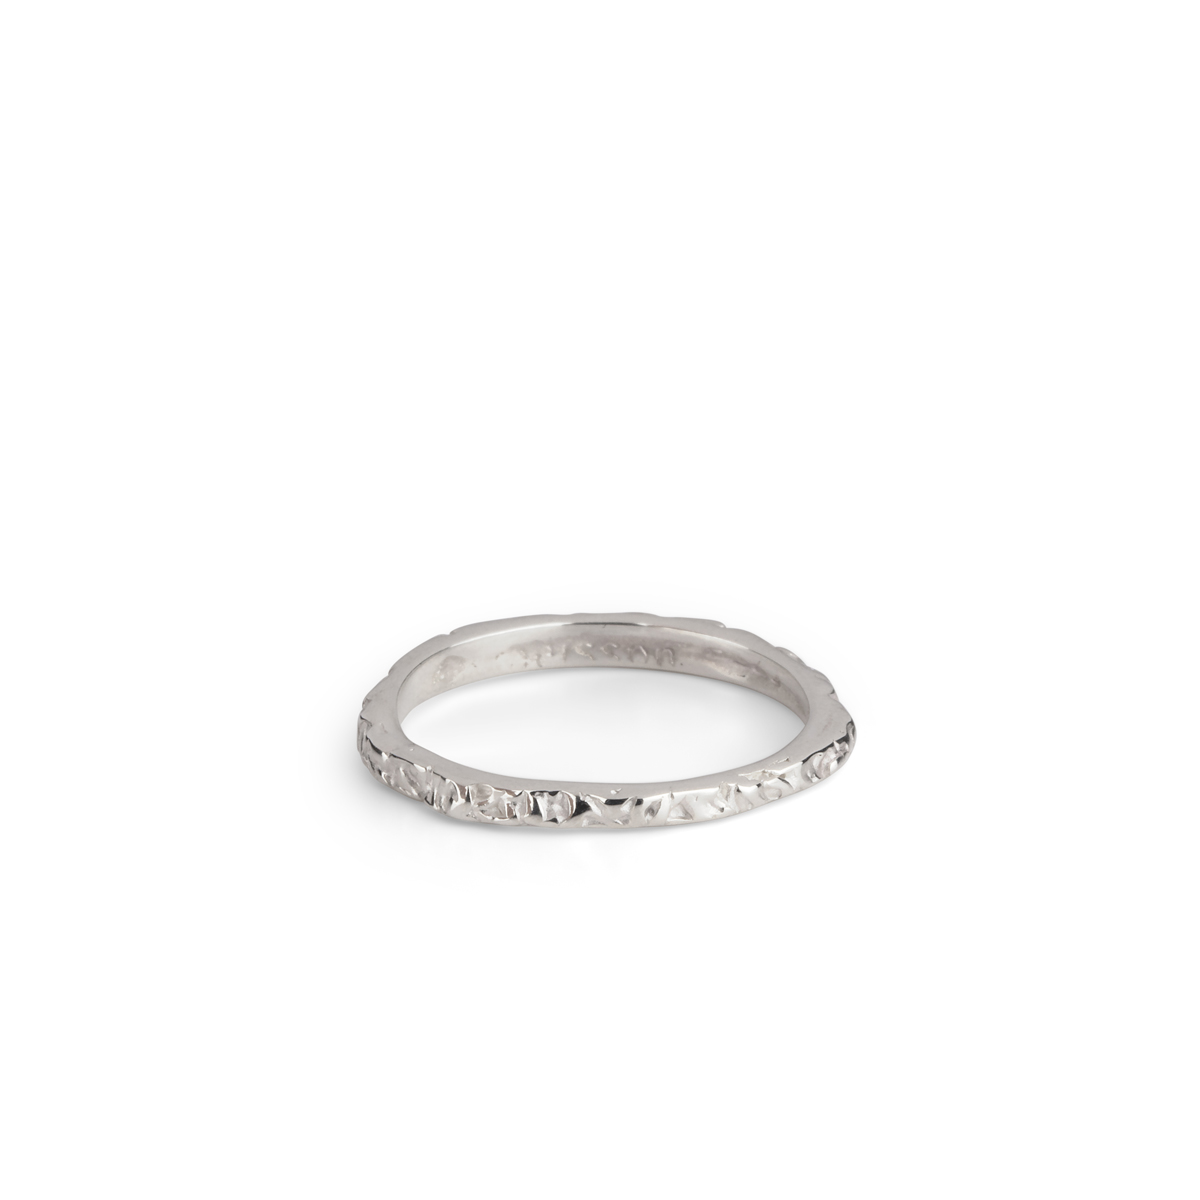 THIN BAND SILVER RING in the group RINGS at EMMA ISRAELSSON (ring003)